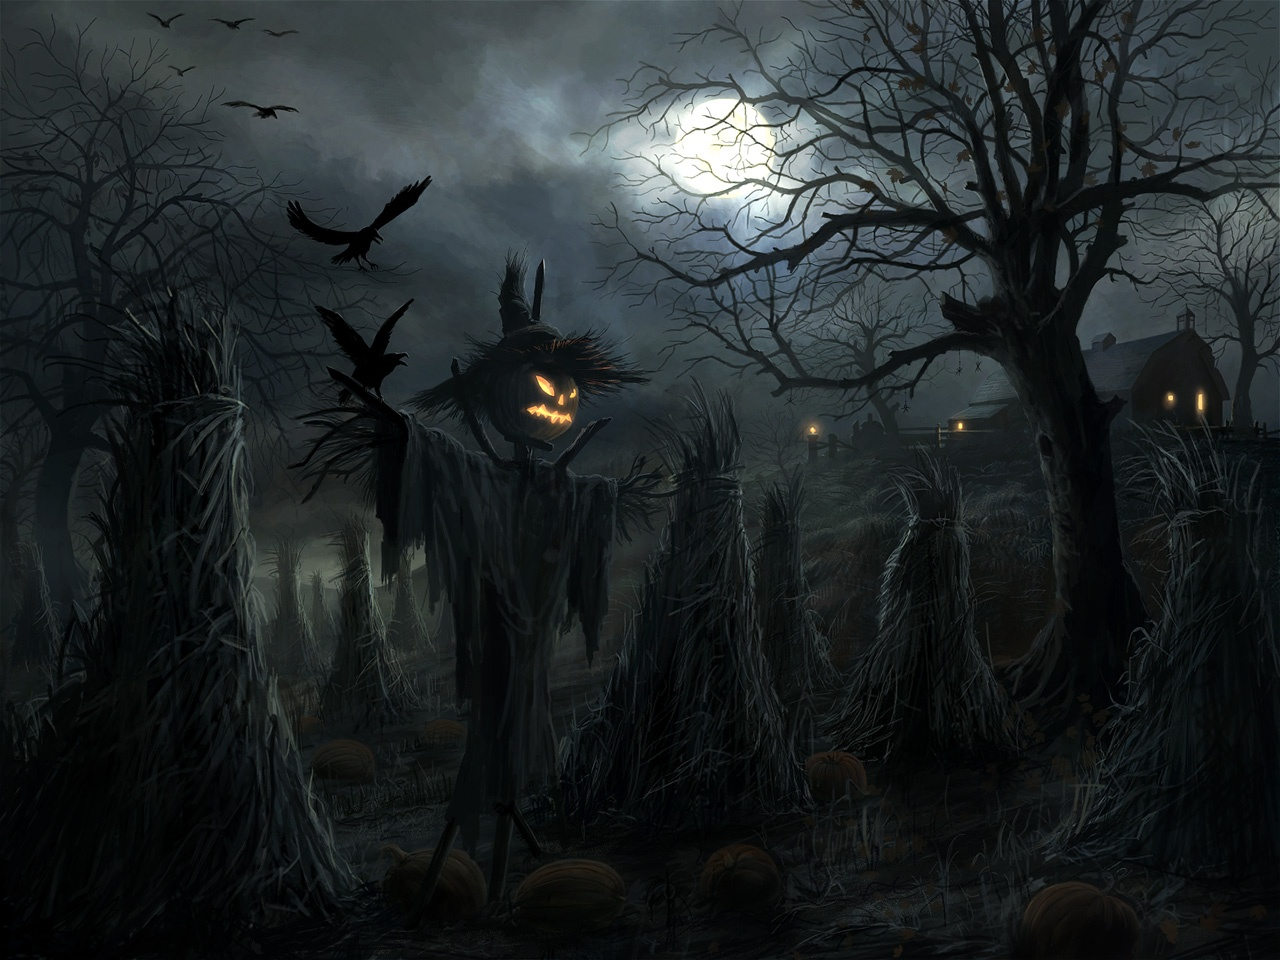 10 Best images about halloween backgrounds on Pinterest | Ipad